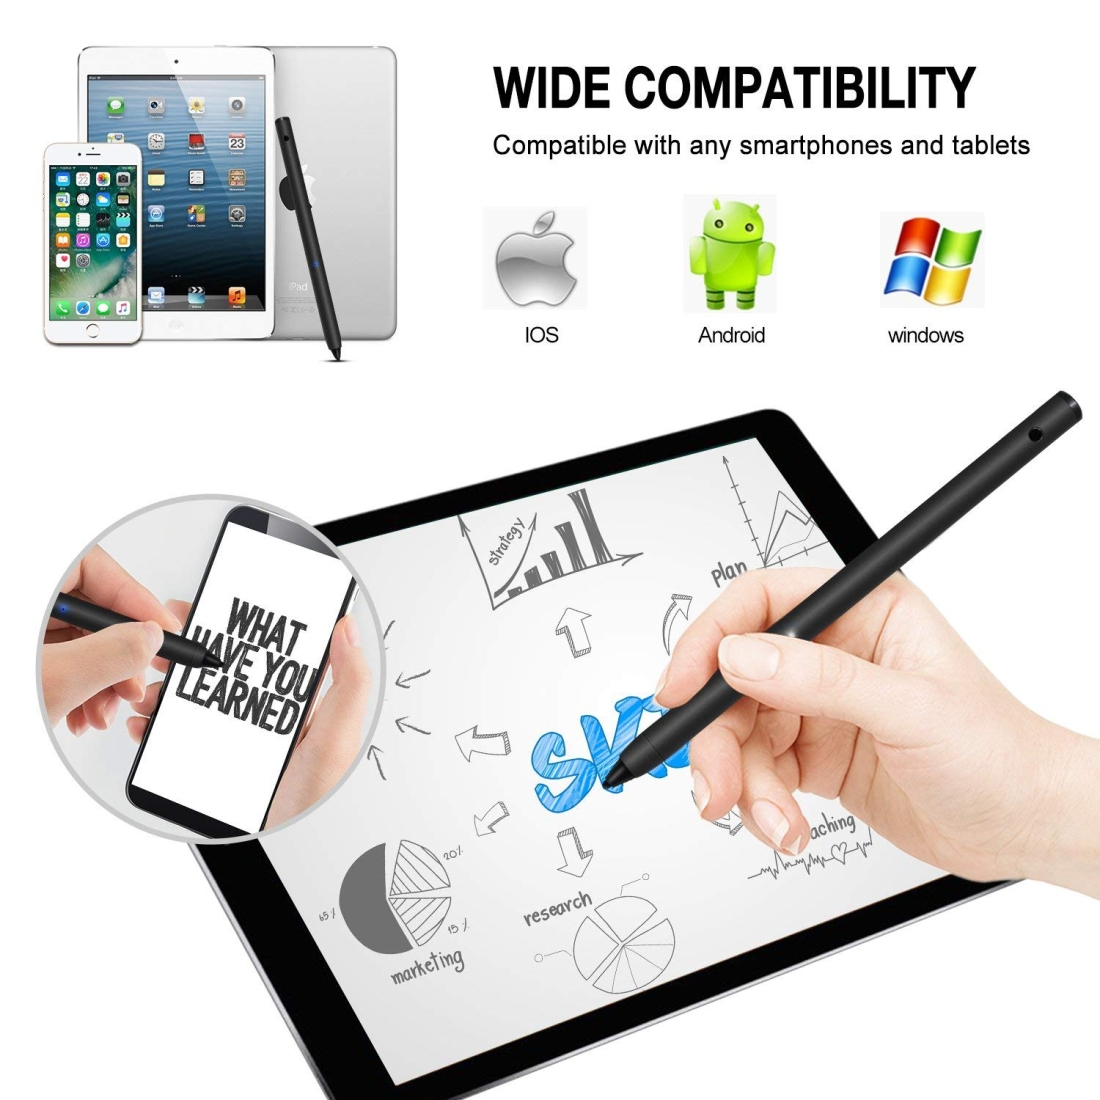 Active Capacitive Pen Stylus Pen for iPhone / iPad / Samsung Tablet PC, For iPhone / iPad / Samsung and Other Capacitive Touch Screen Devices (Black)